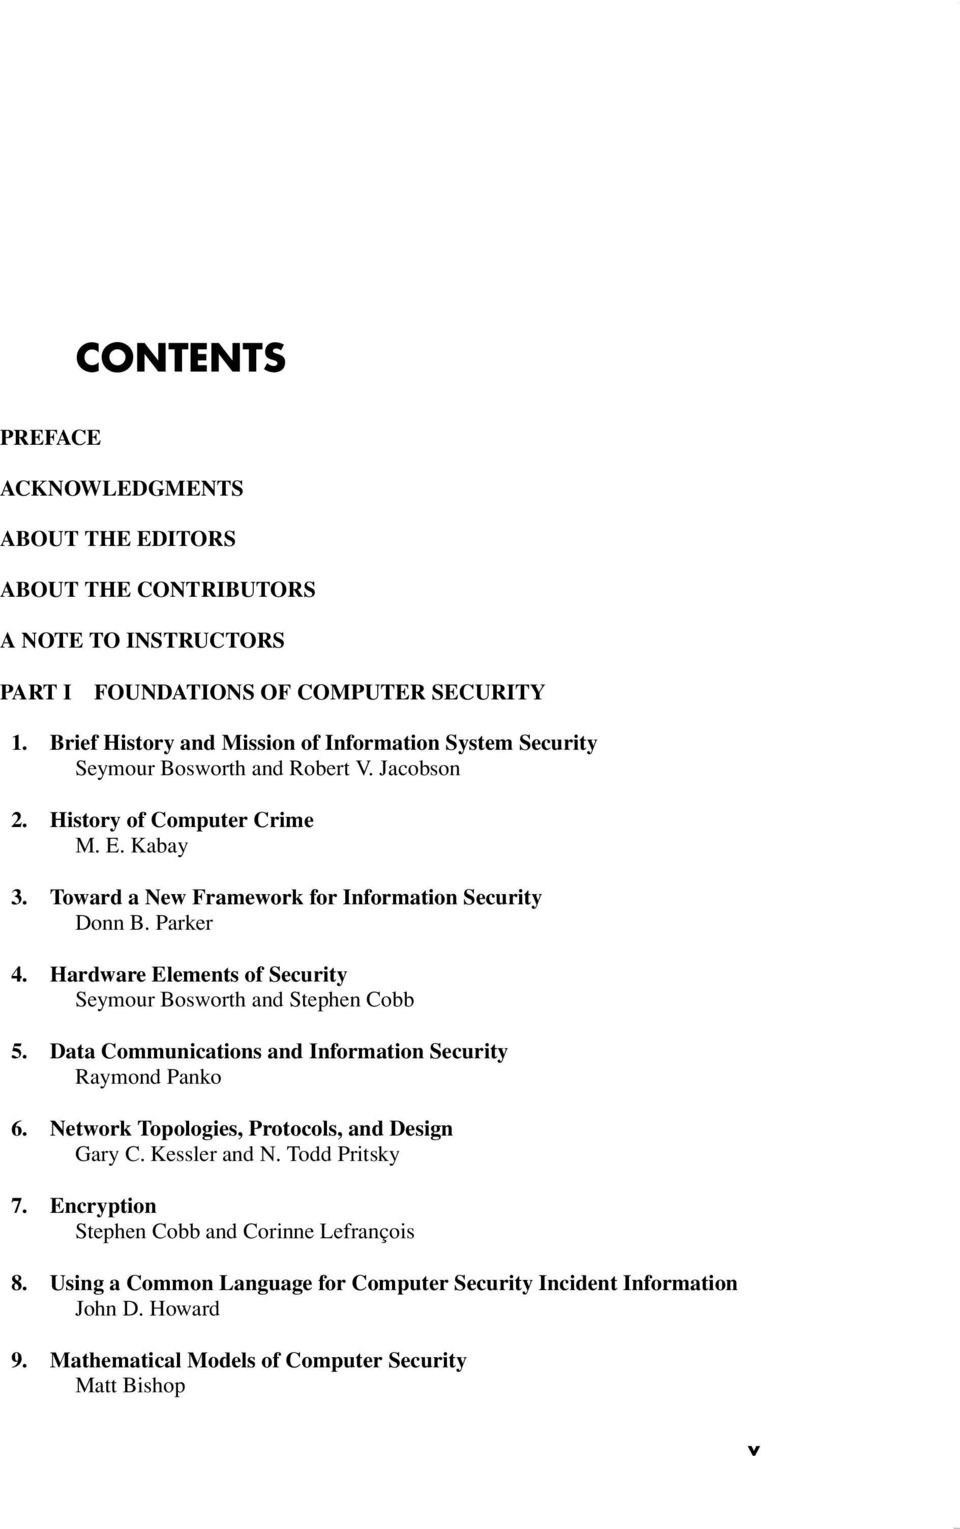 Toward a New Framework for Information Security Donn B. Parker 4. Hardware Elements of Security Seymour Bosworth and Stephen Cobb 5.